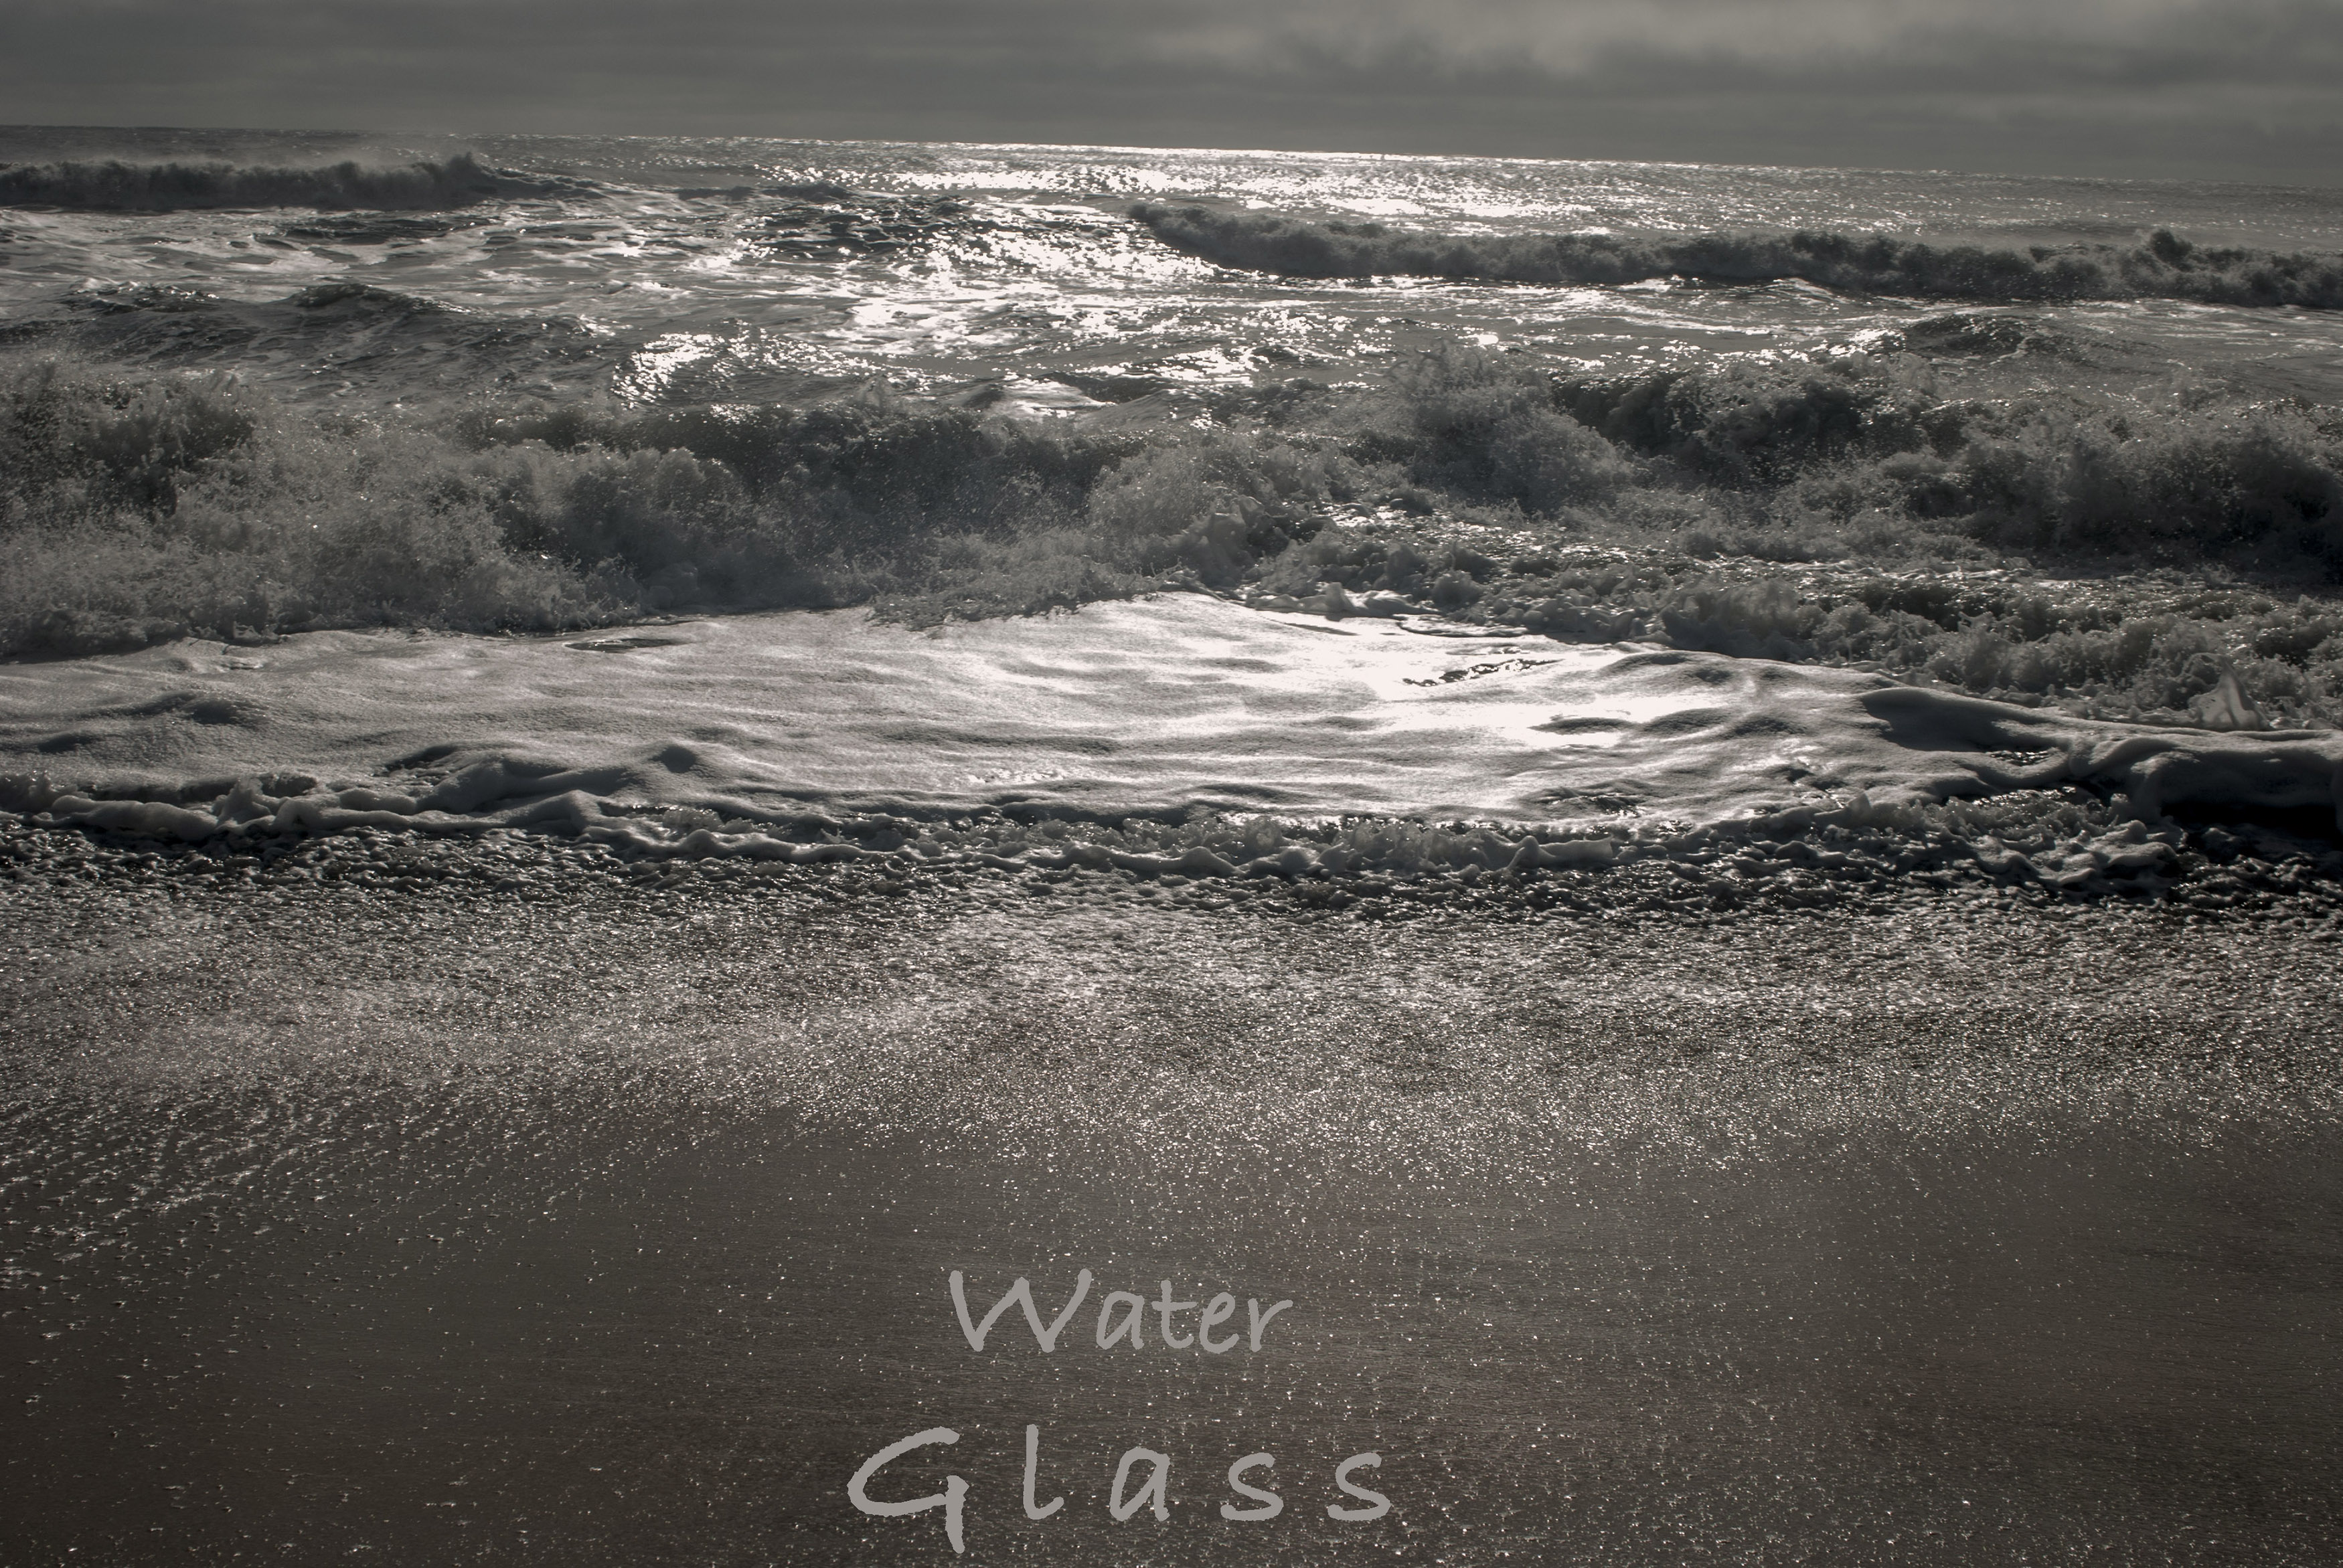 Waterfront Image & Text